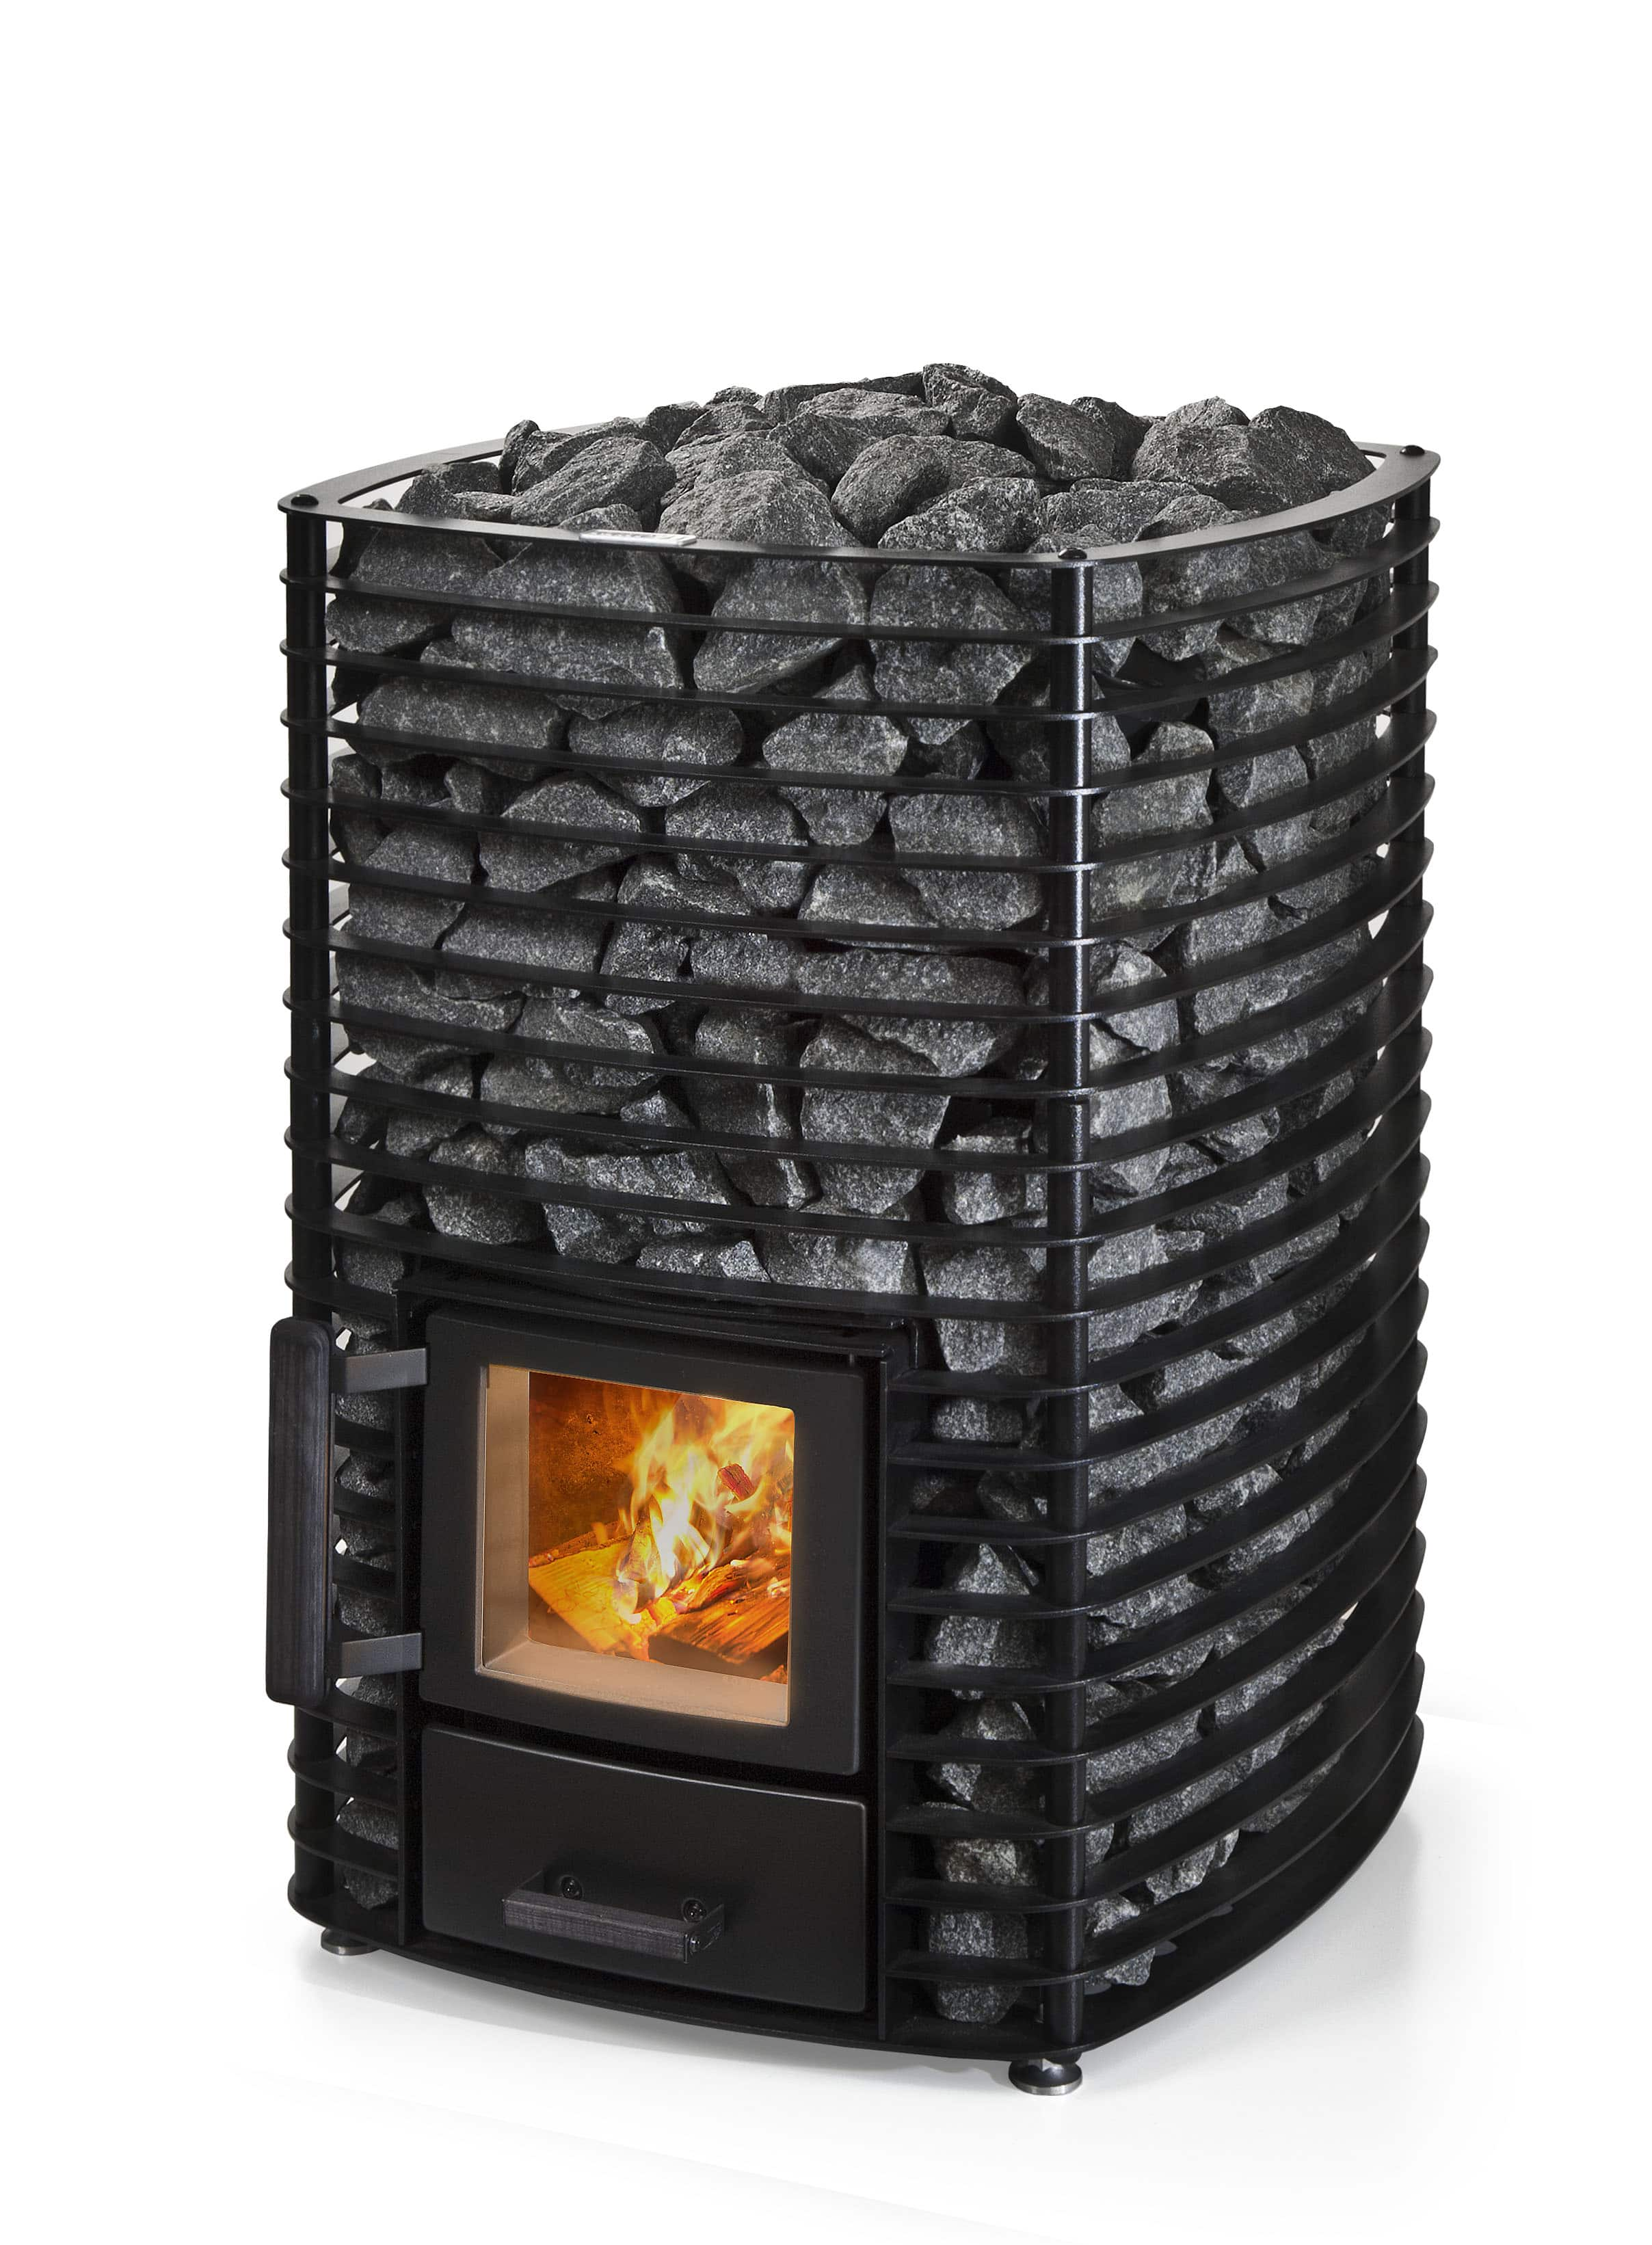 The Traditional Narvi Sauna Heater Offers An Authentic